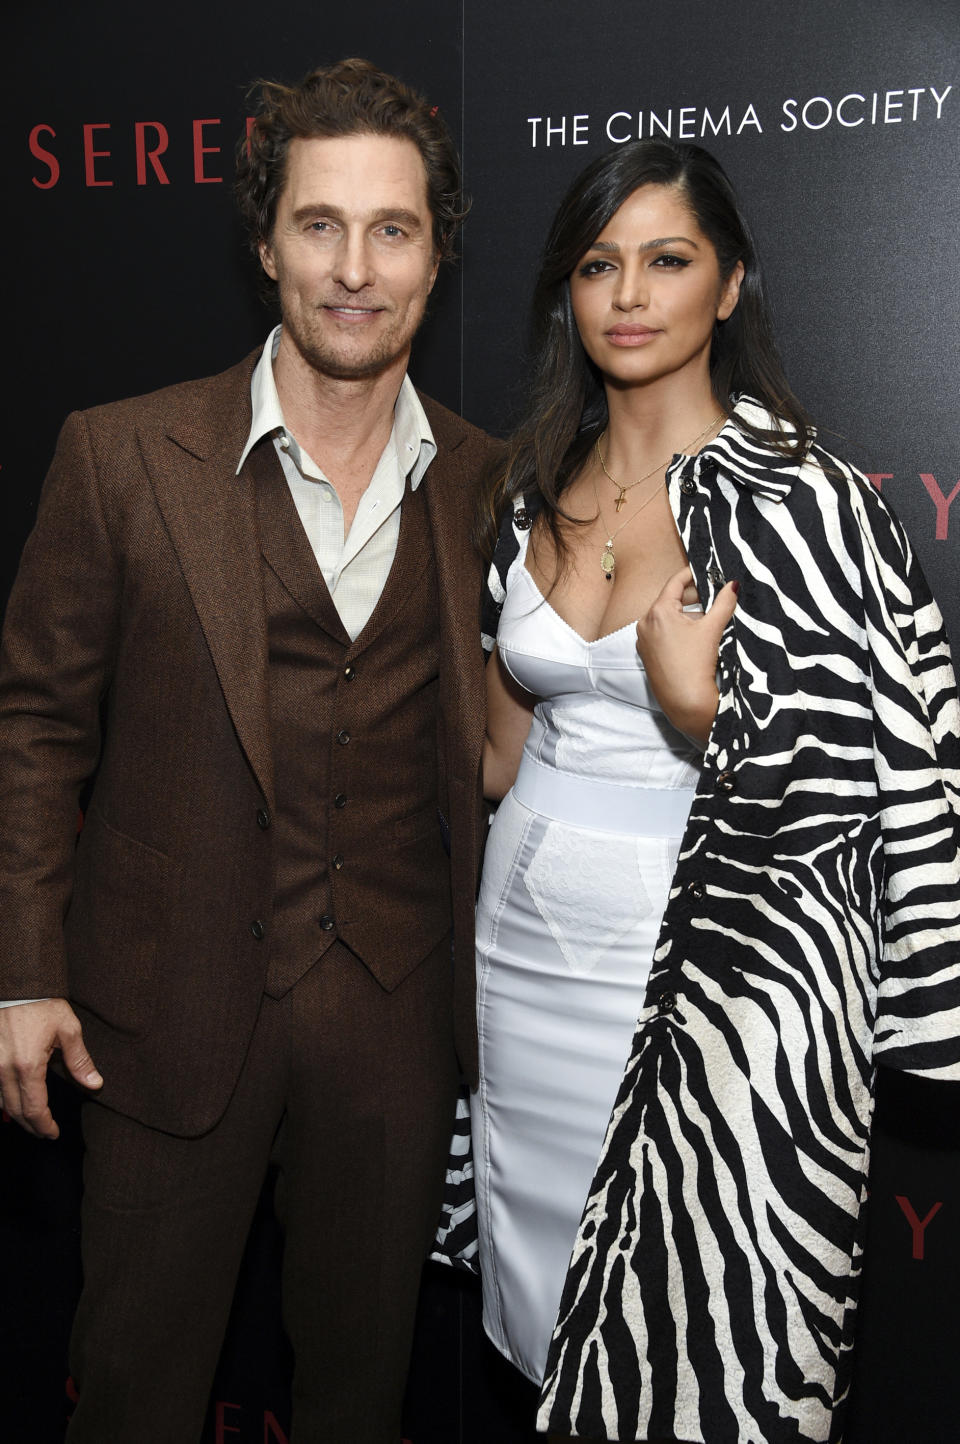 "Actor Matthew McConaughey and wife Camila Alves attend a special screening of ""Serenity"" at the Museum of Modern Art on Wednesday, Jan. 23, 2019, in New York. (Photo by Evan Agostini/Invision/AP)"